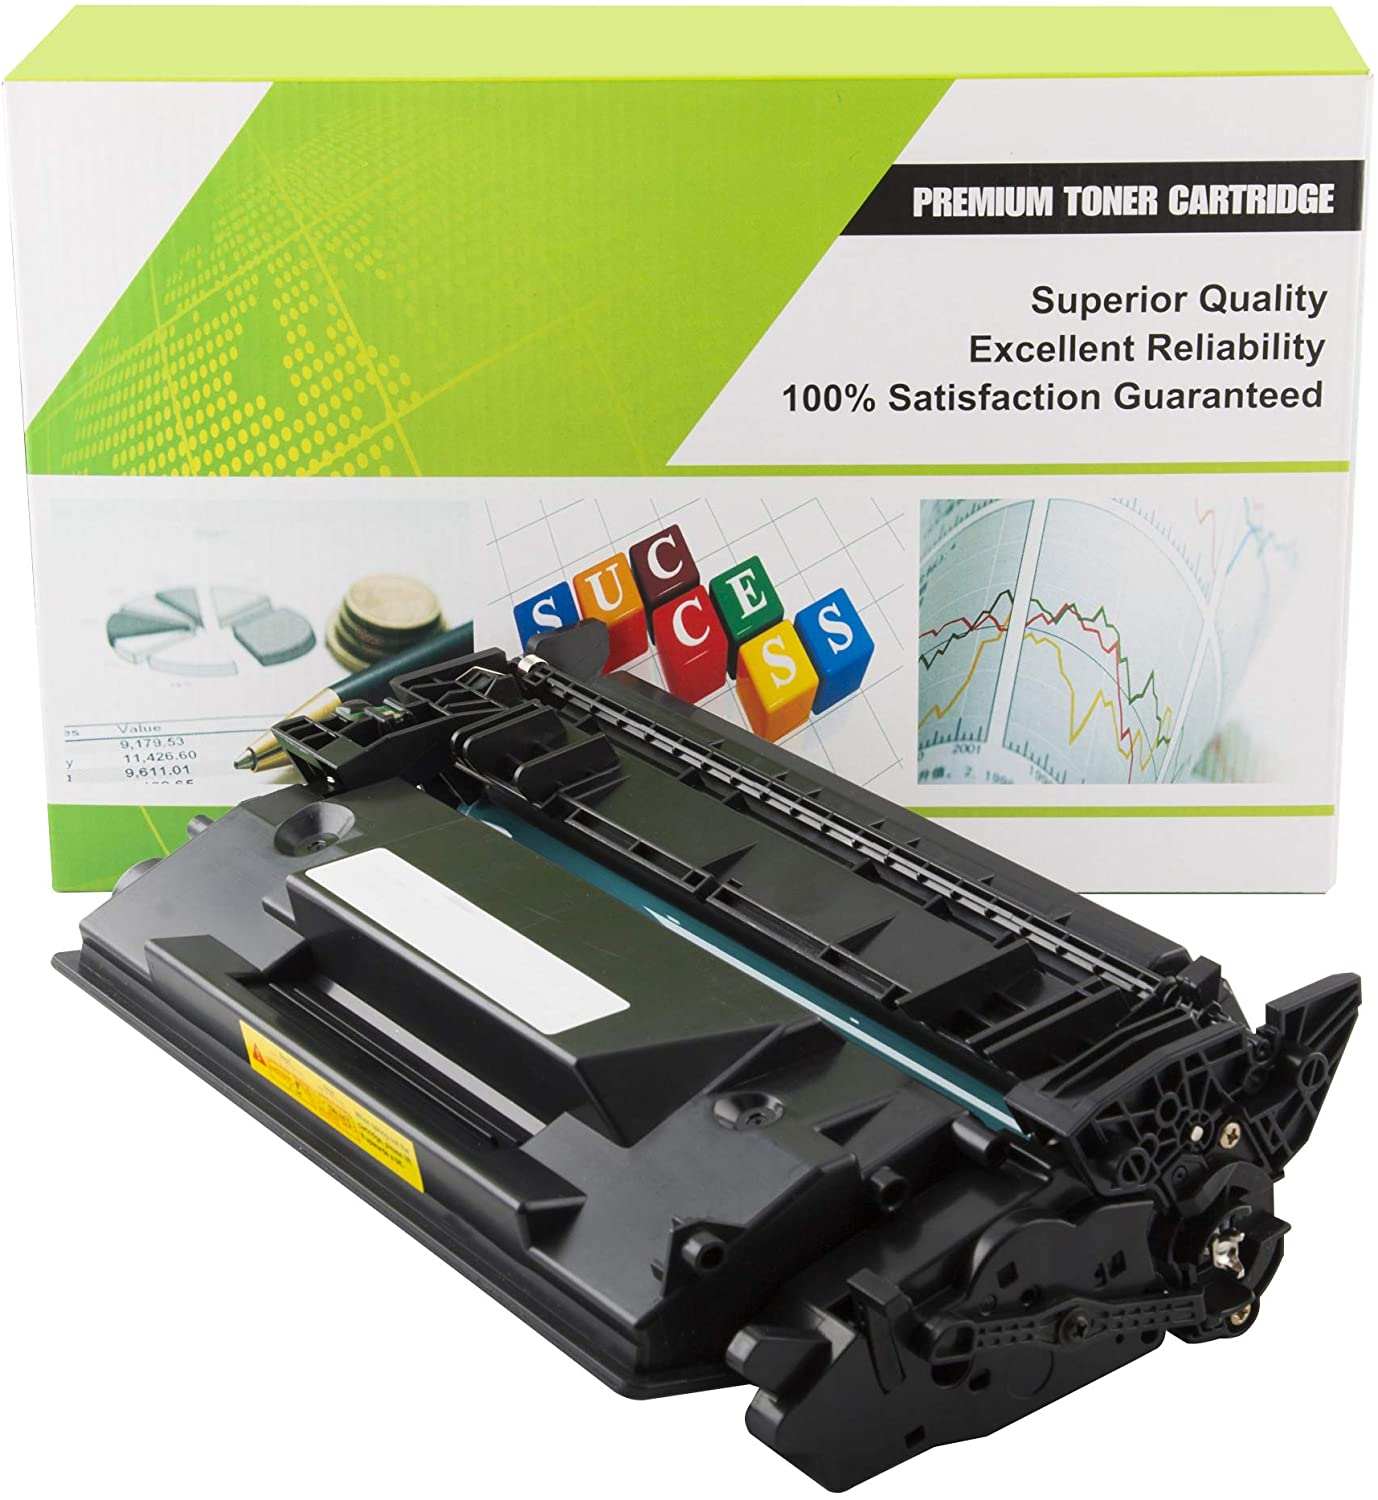 OfficePro 2k17 HP Ink Toner Cartridge CF226A Premium Laser Toner Cartridge | 100% Compatible with a Wide Range of HP Laserjet Pro Printers | High Yield - 9000 Pages | Black Ink | 1 Pack